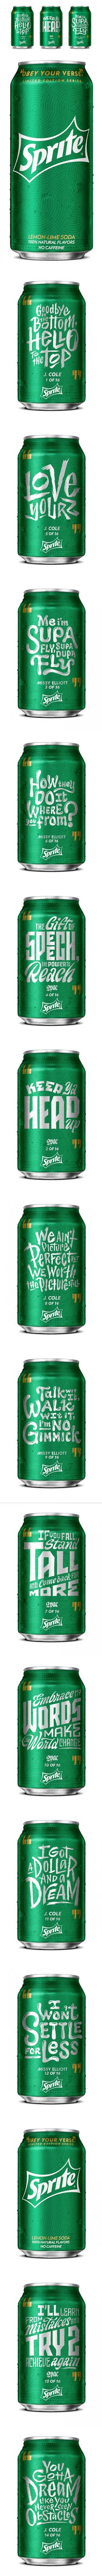 Sprite Lyrical Cans — The Dieline | Packaging & Branding Design & Innovation News